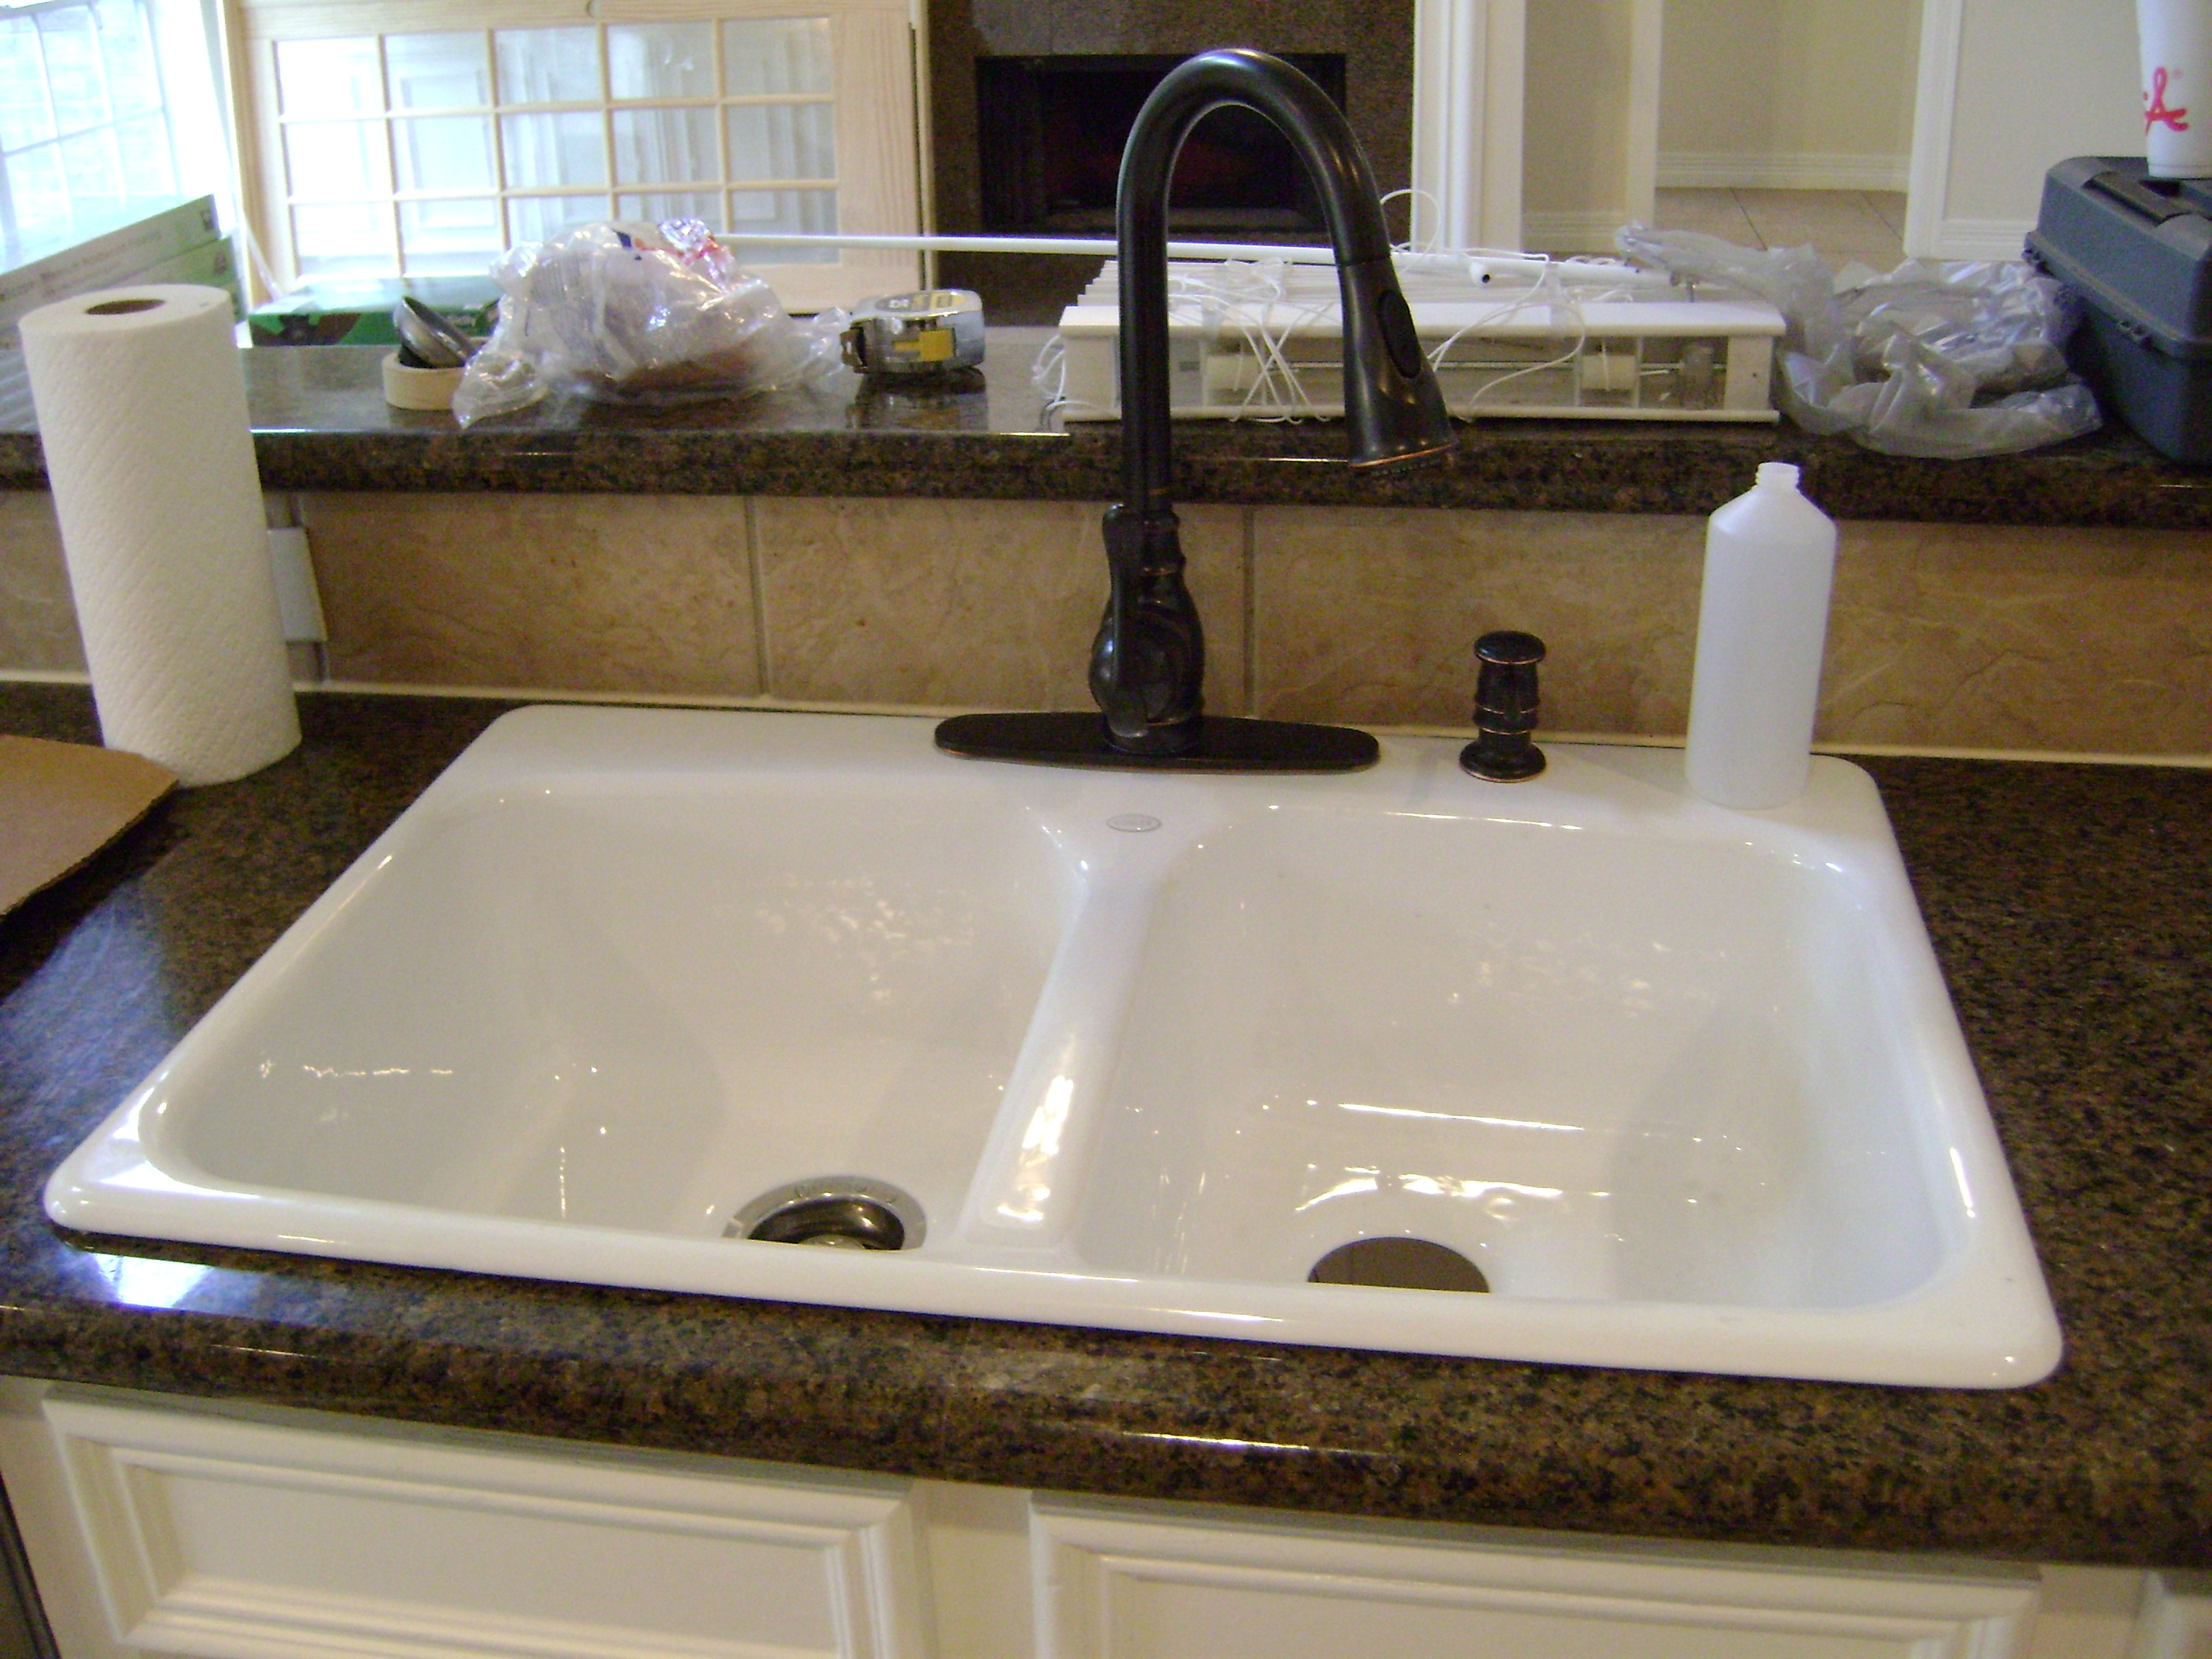 Ideas, kitchen sinks and faucets kitchen sinks and faucets 28 white kitchen sink faucets 25 best ideas about kitchen 3072 x 2304  .